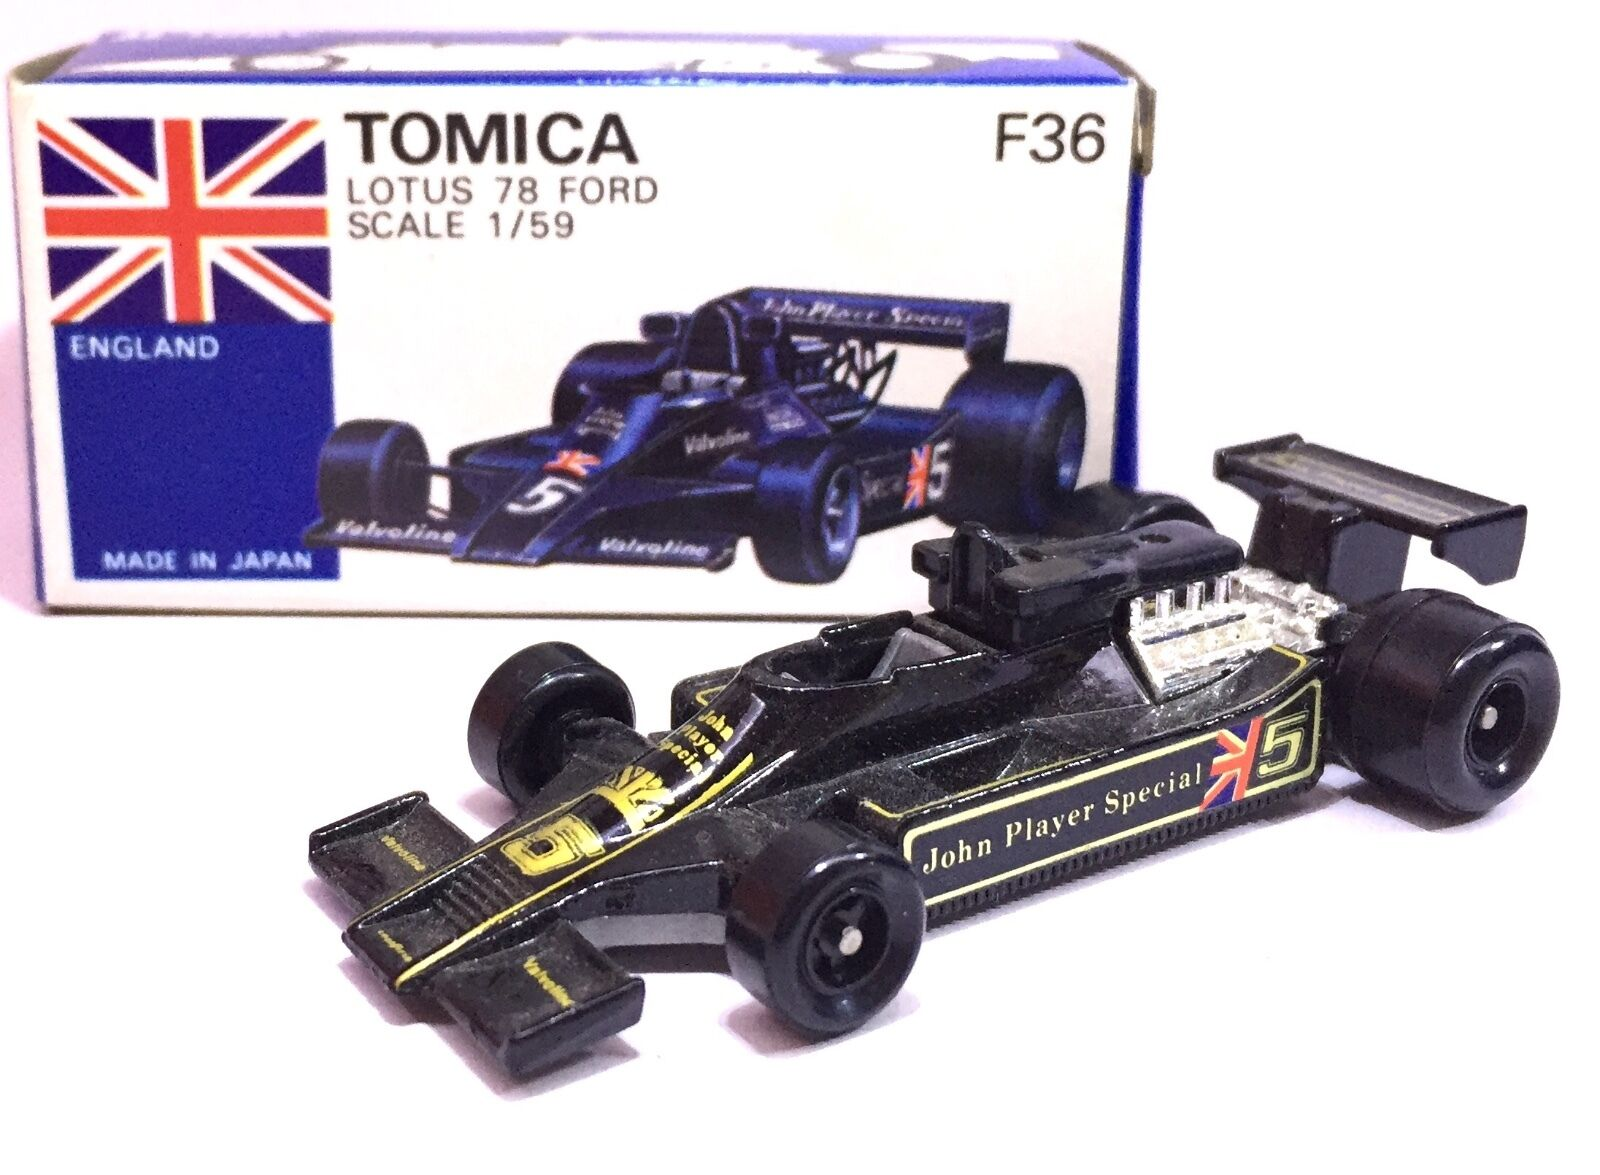 MADE IN JAPAN TOMY TOMICA F36 LOTUS 78 FORD RACING JOHN PLAYER 1 59 DIECAST CAR